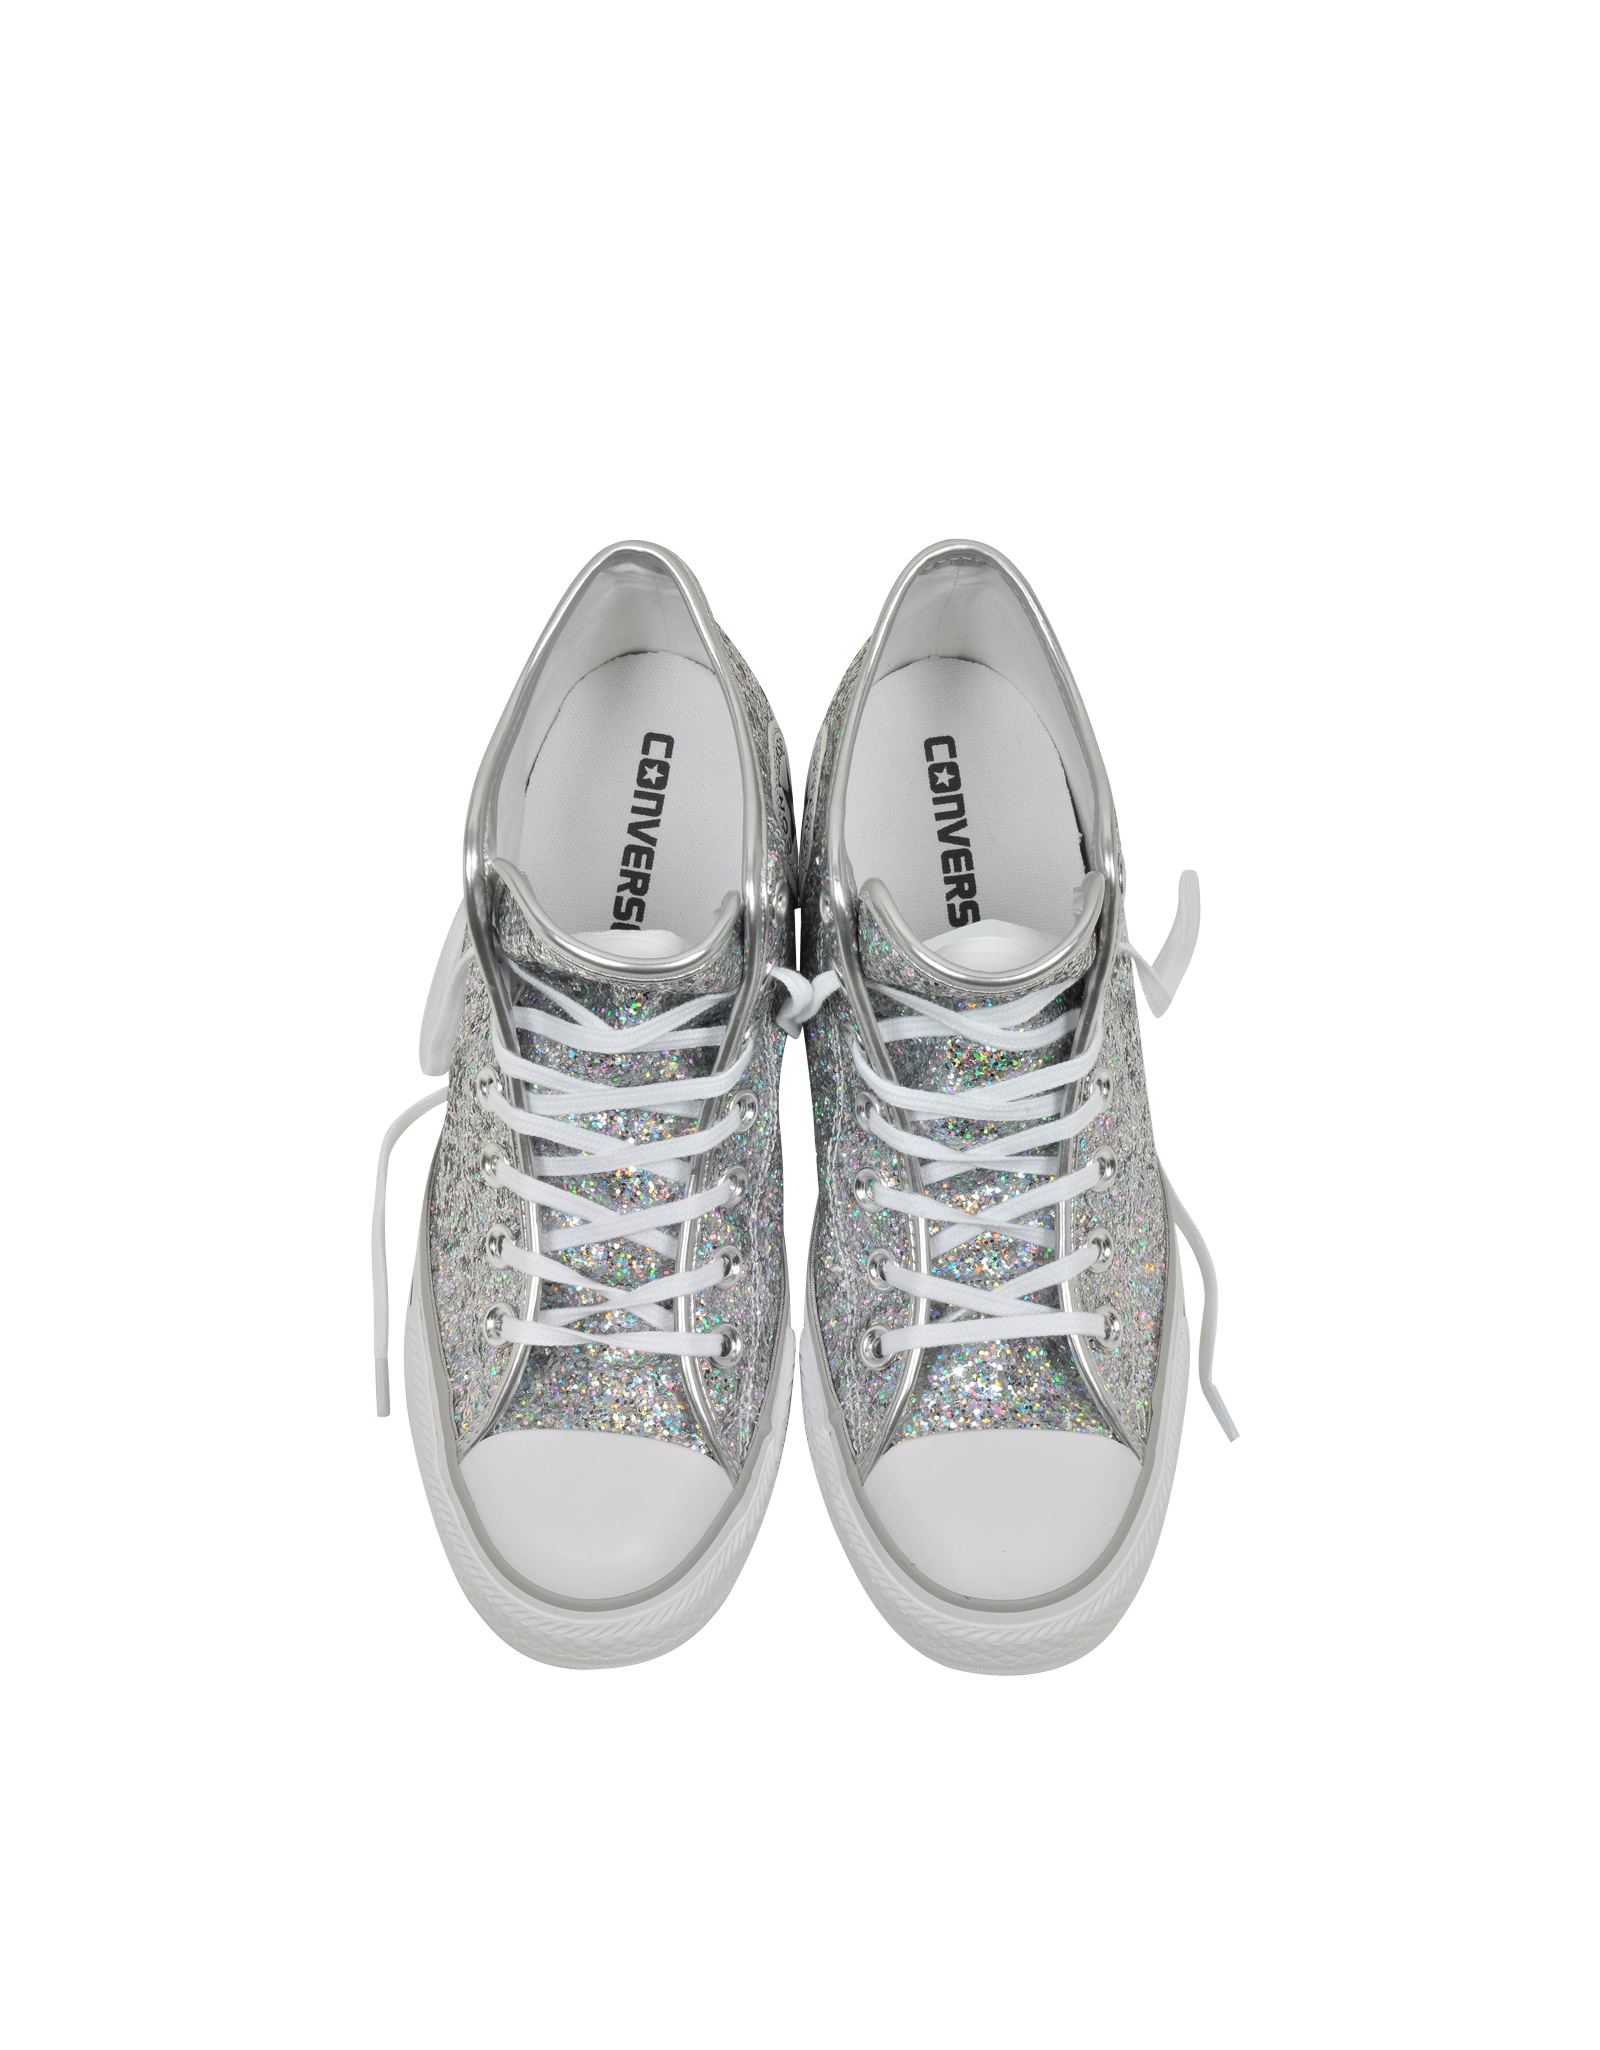 ccfb52c7c2ca Lyst - Converse All Star Mid Lux Glitter Wedge Sneaker in Gray